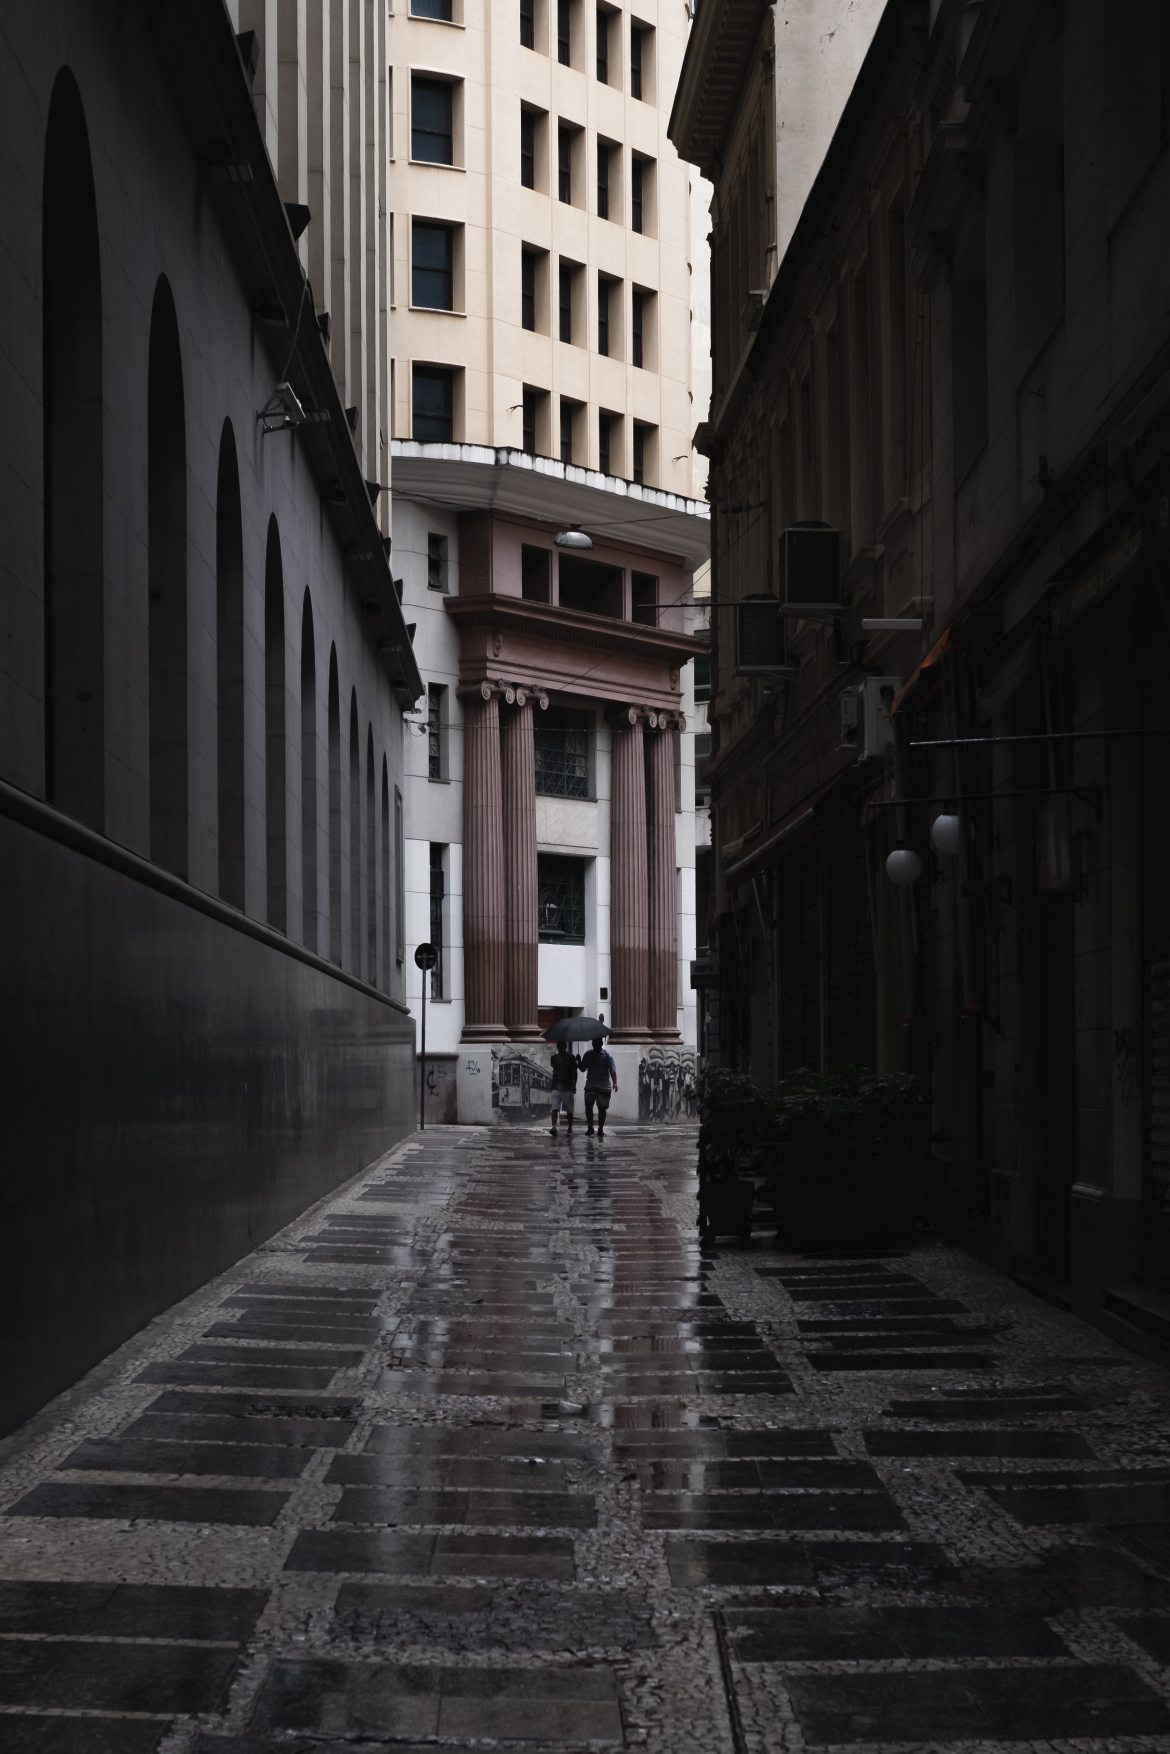 alley-architecture-buildings-1762185